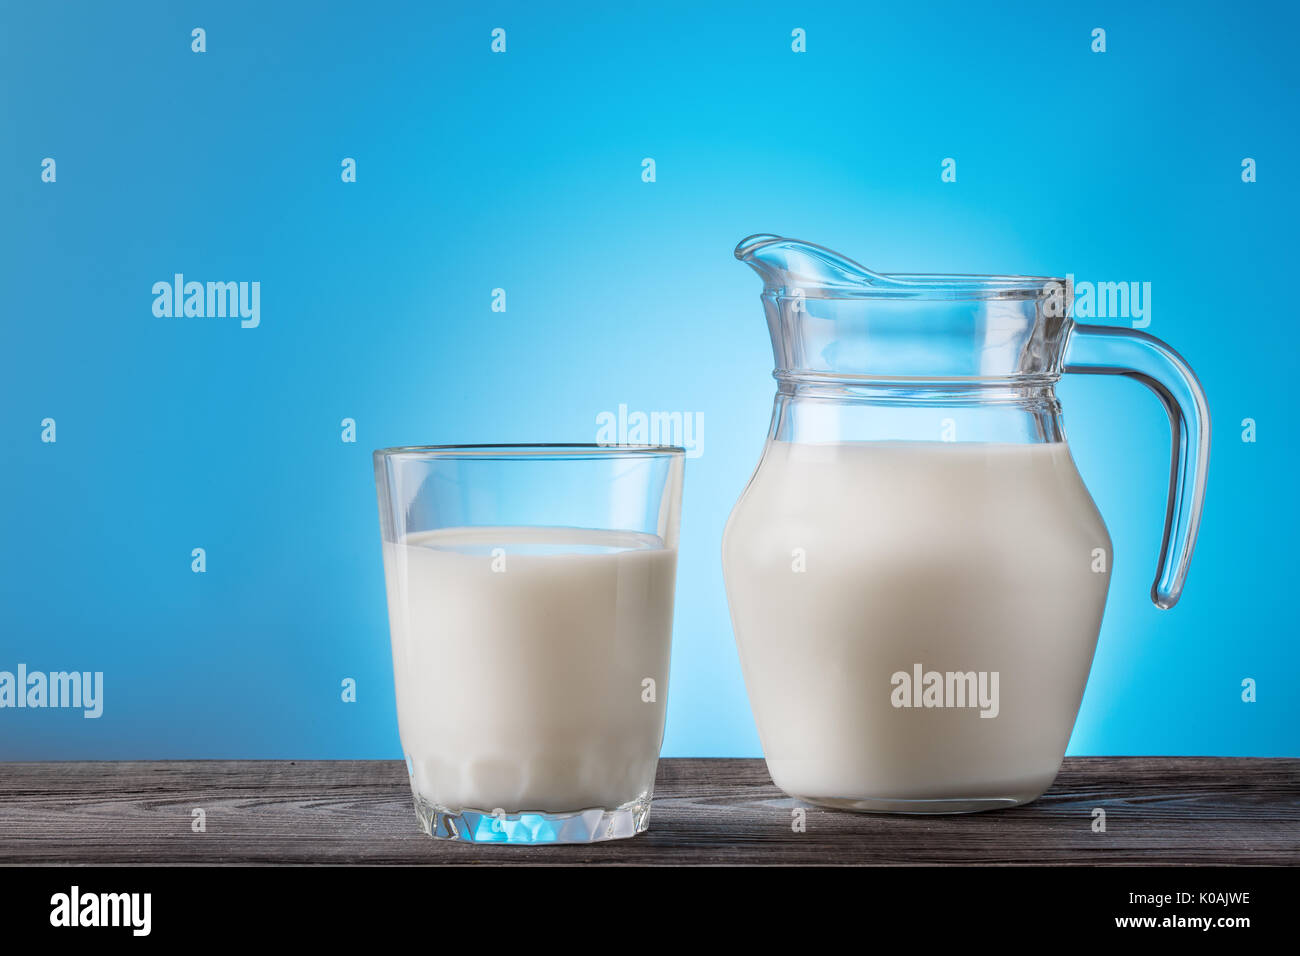 Milk in a glass and jug on a wooden table - Stock Image